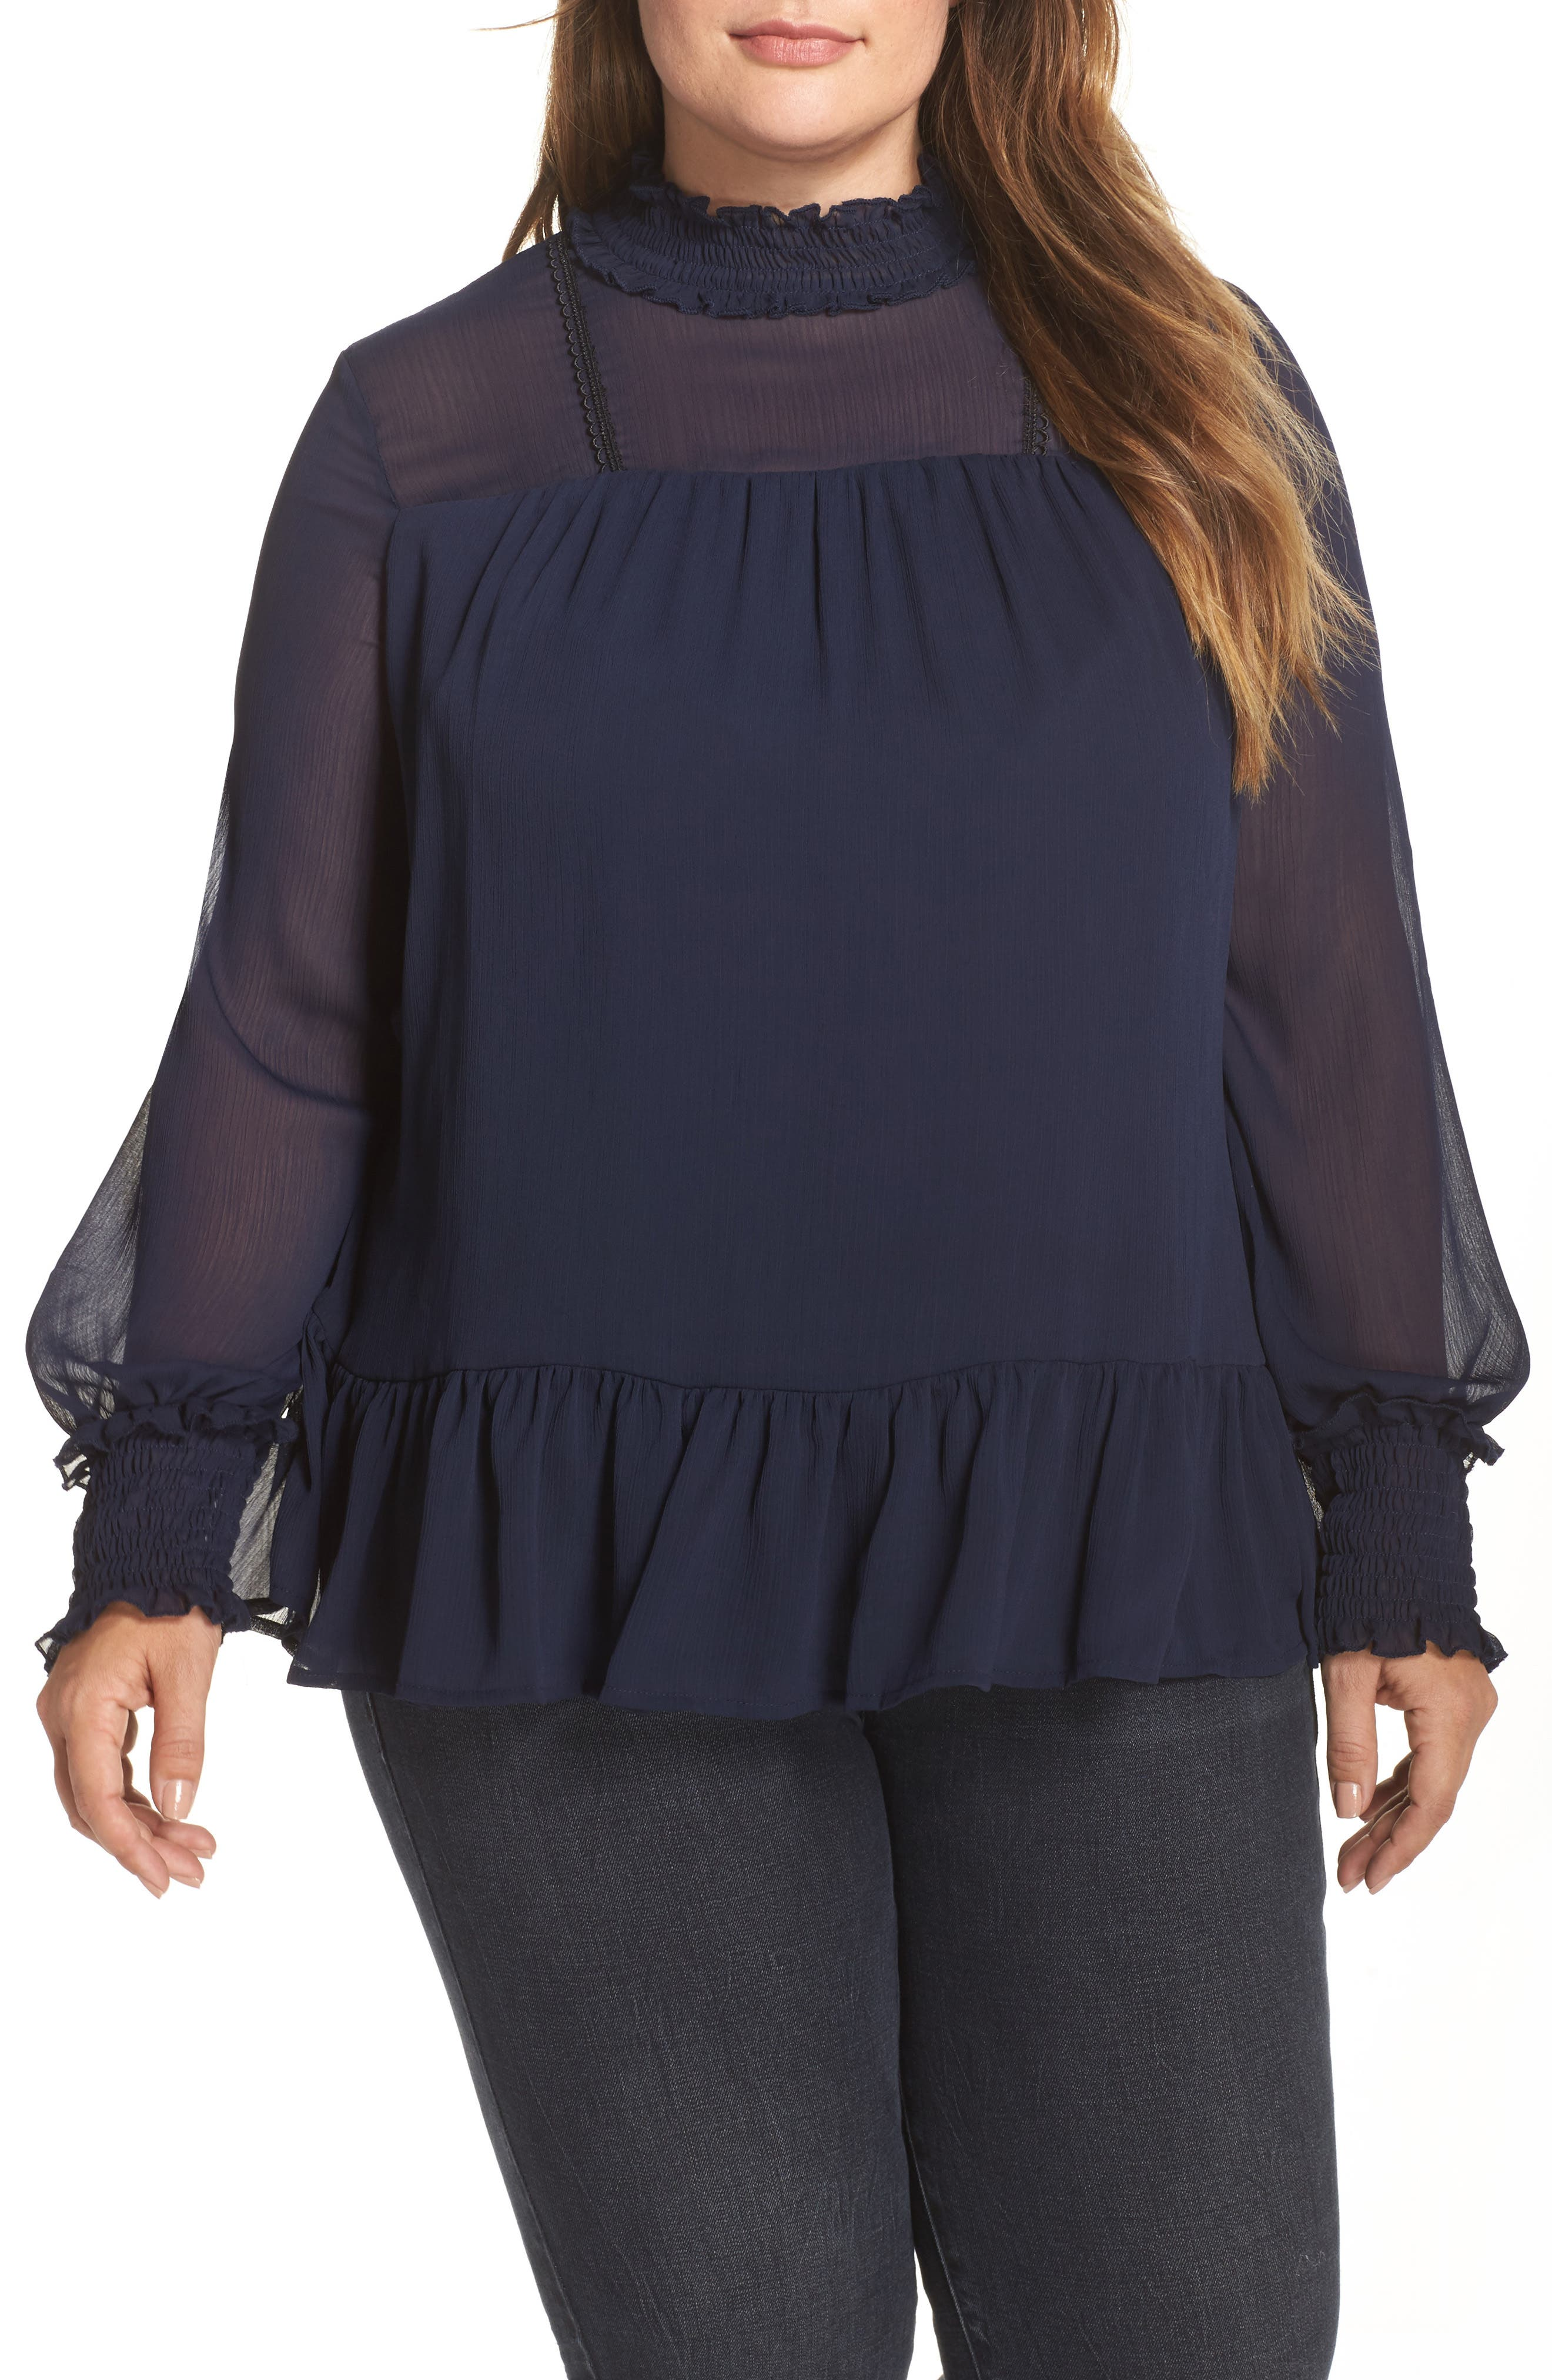 Alternate Image 1 Selected - LOST INK Lace Trim Babydoll Top (Plus Size)